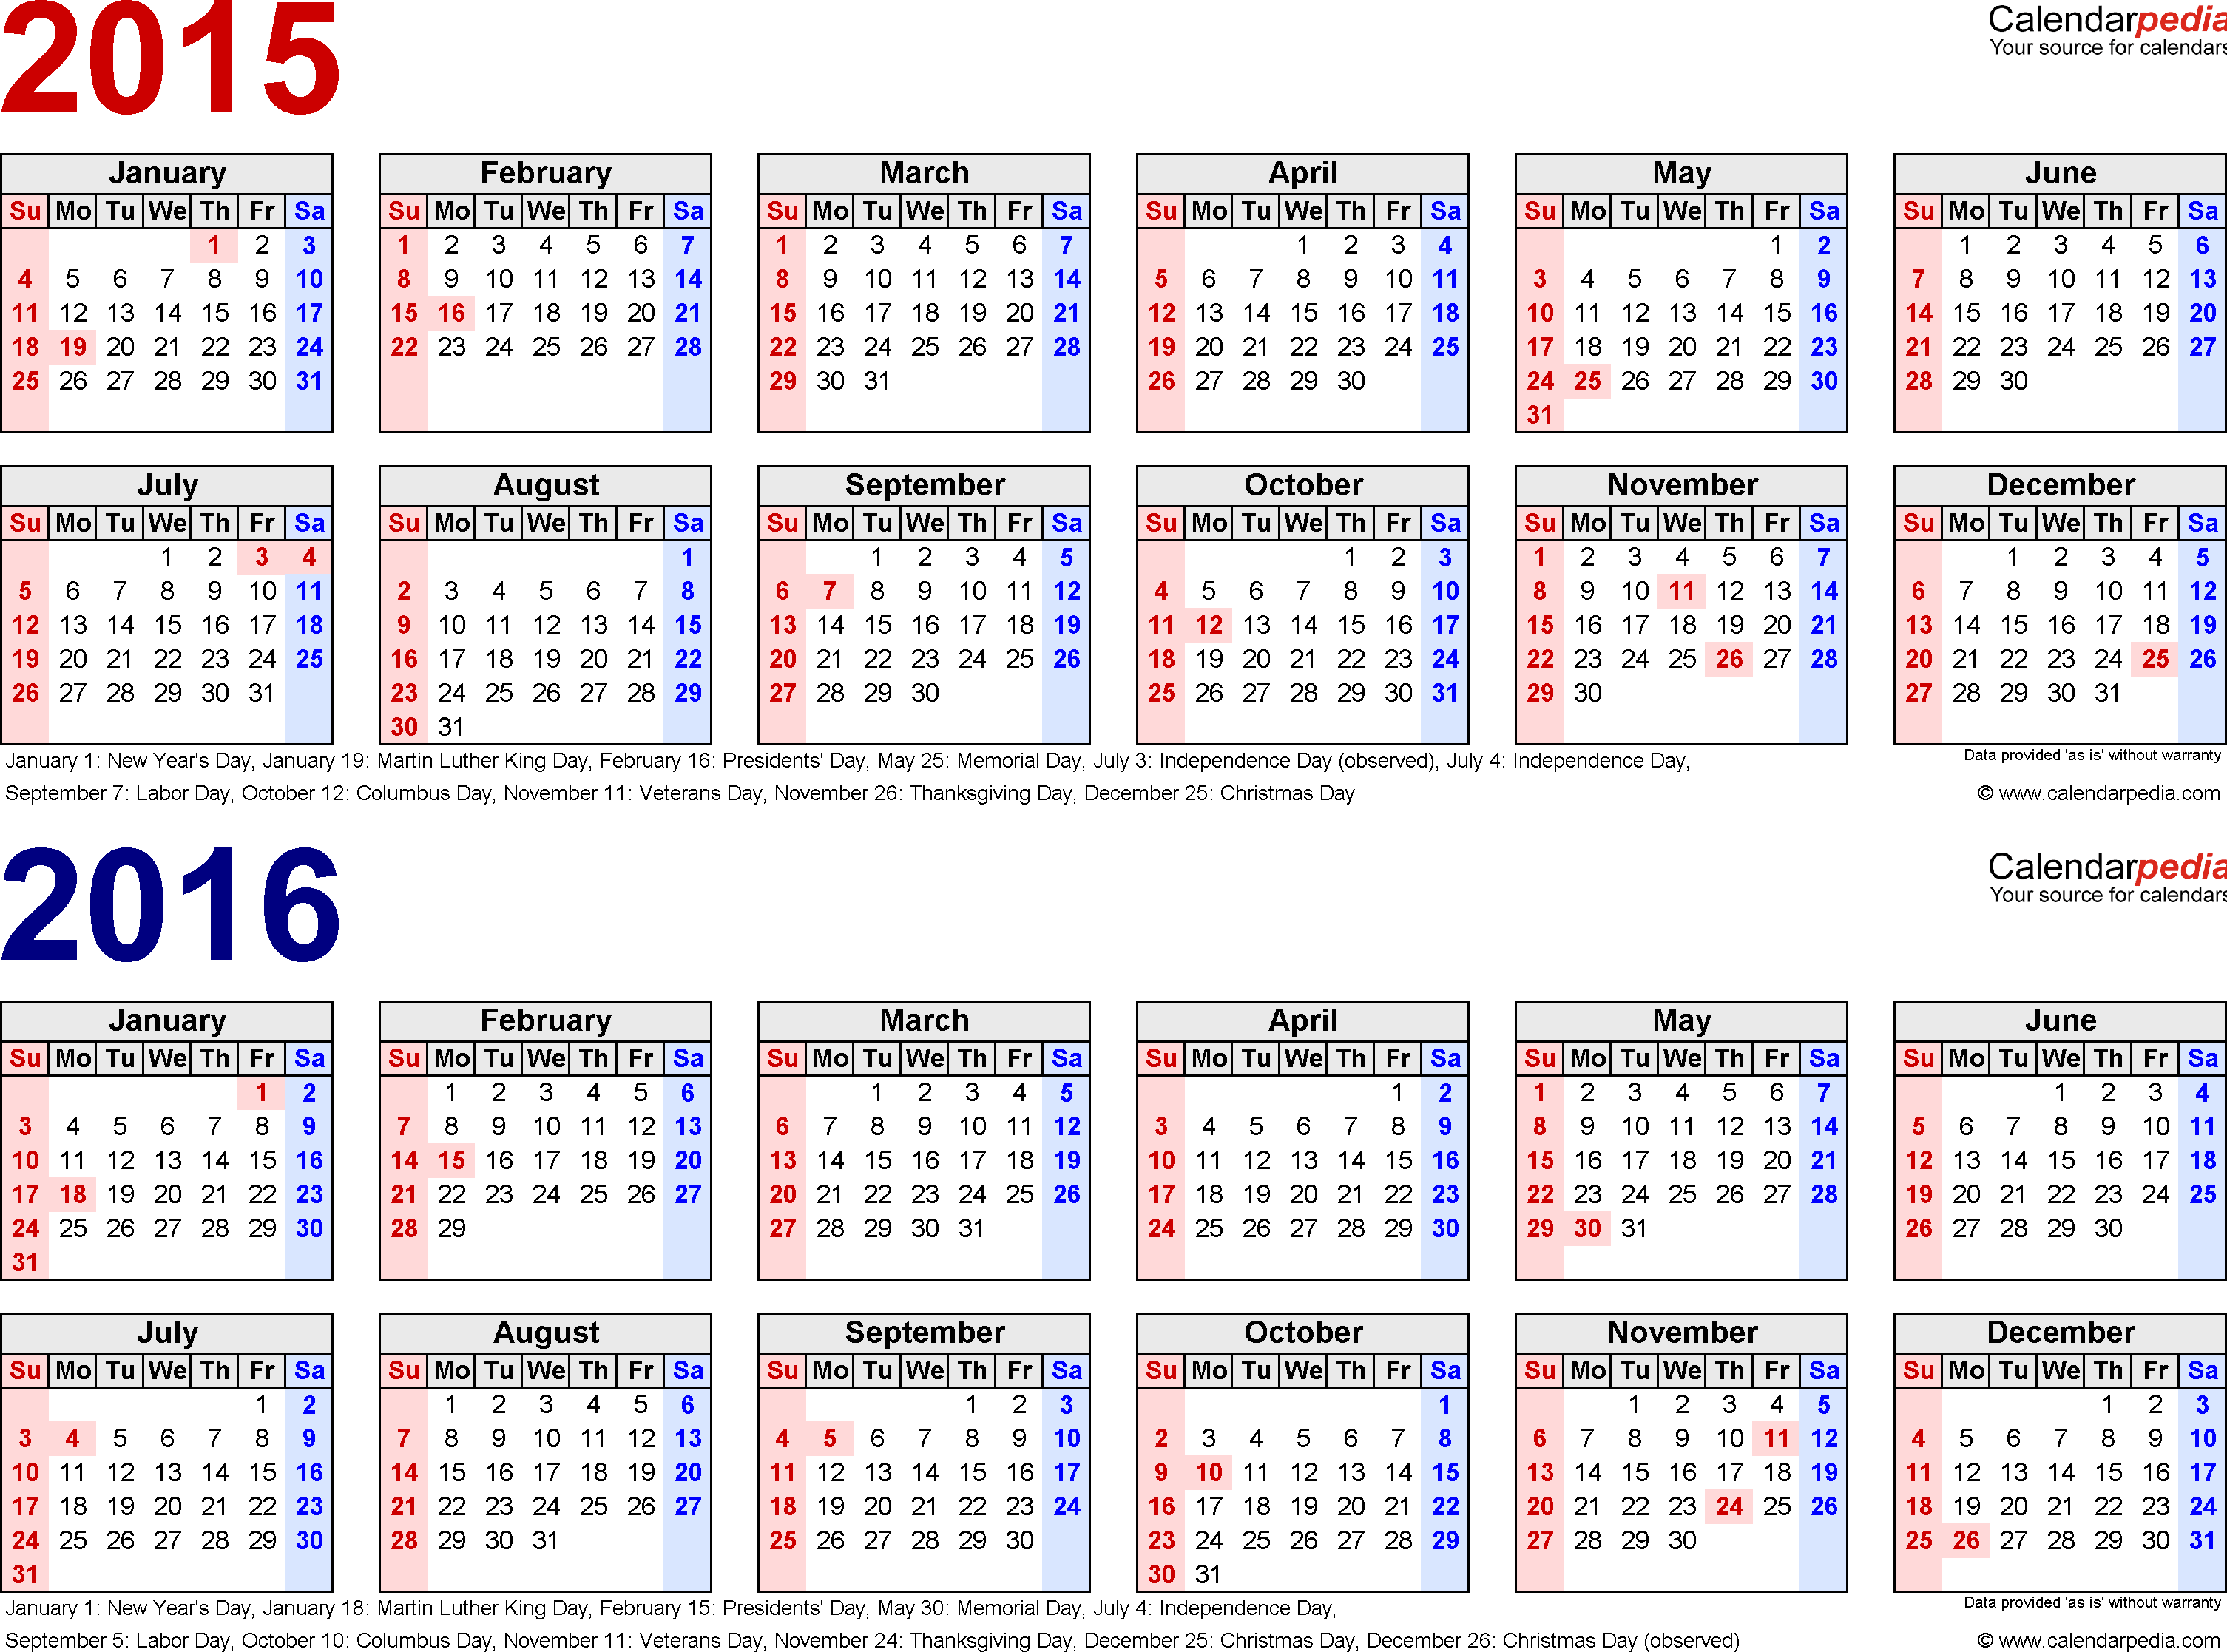 Template 1: PDF template for two year calendar 2015/2016 (landscape orientation, 1 page, in red and blue)